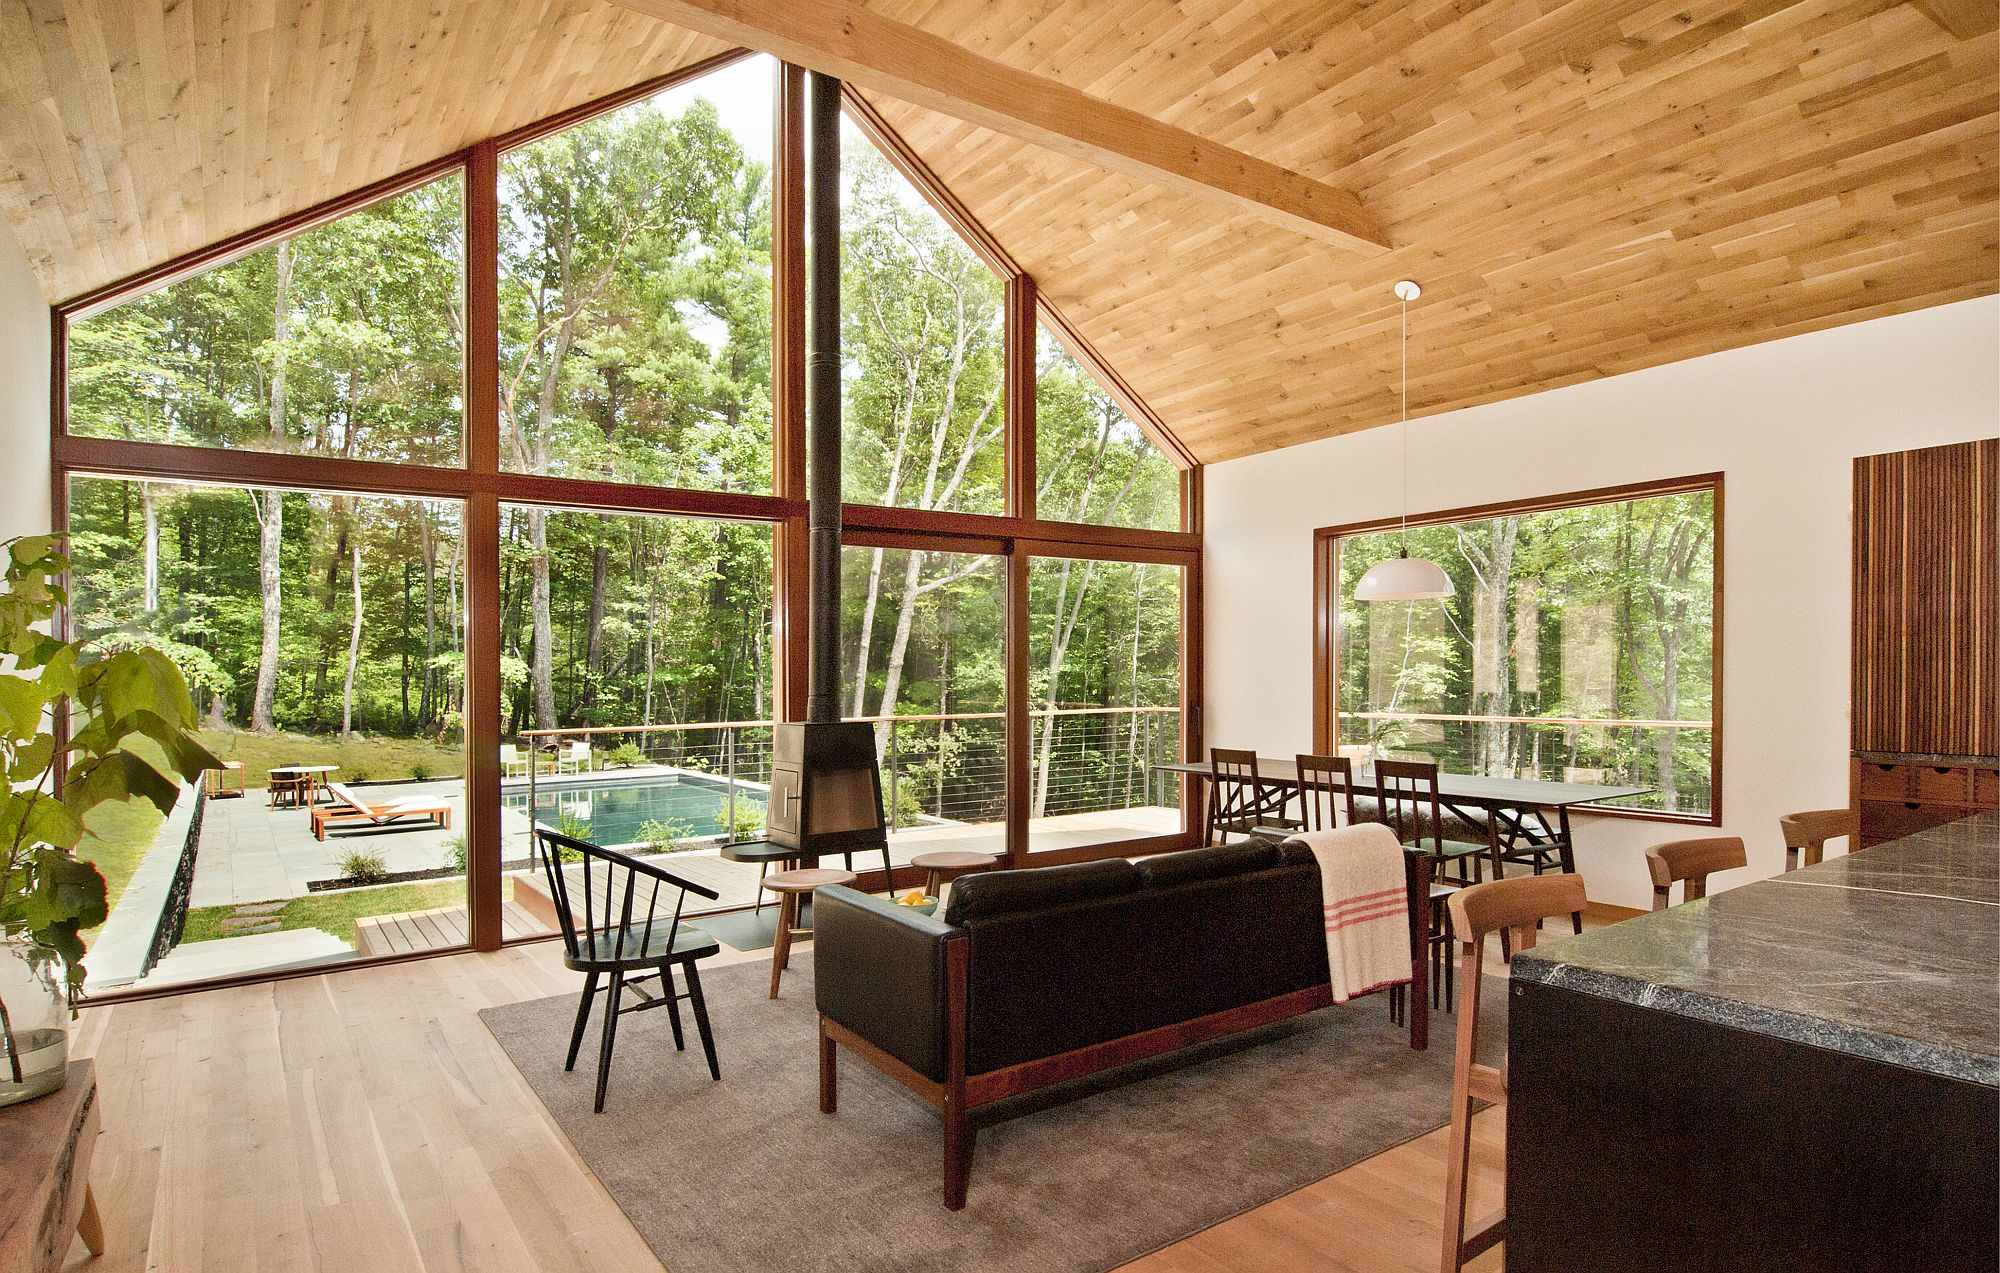 Gabled-roof-and-wall-of-glass-gives-the-home-a-modern-midcentury-vibe